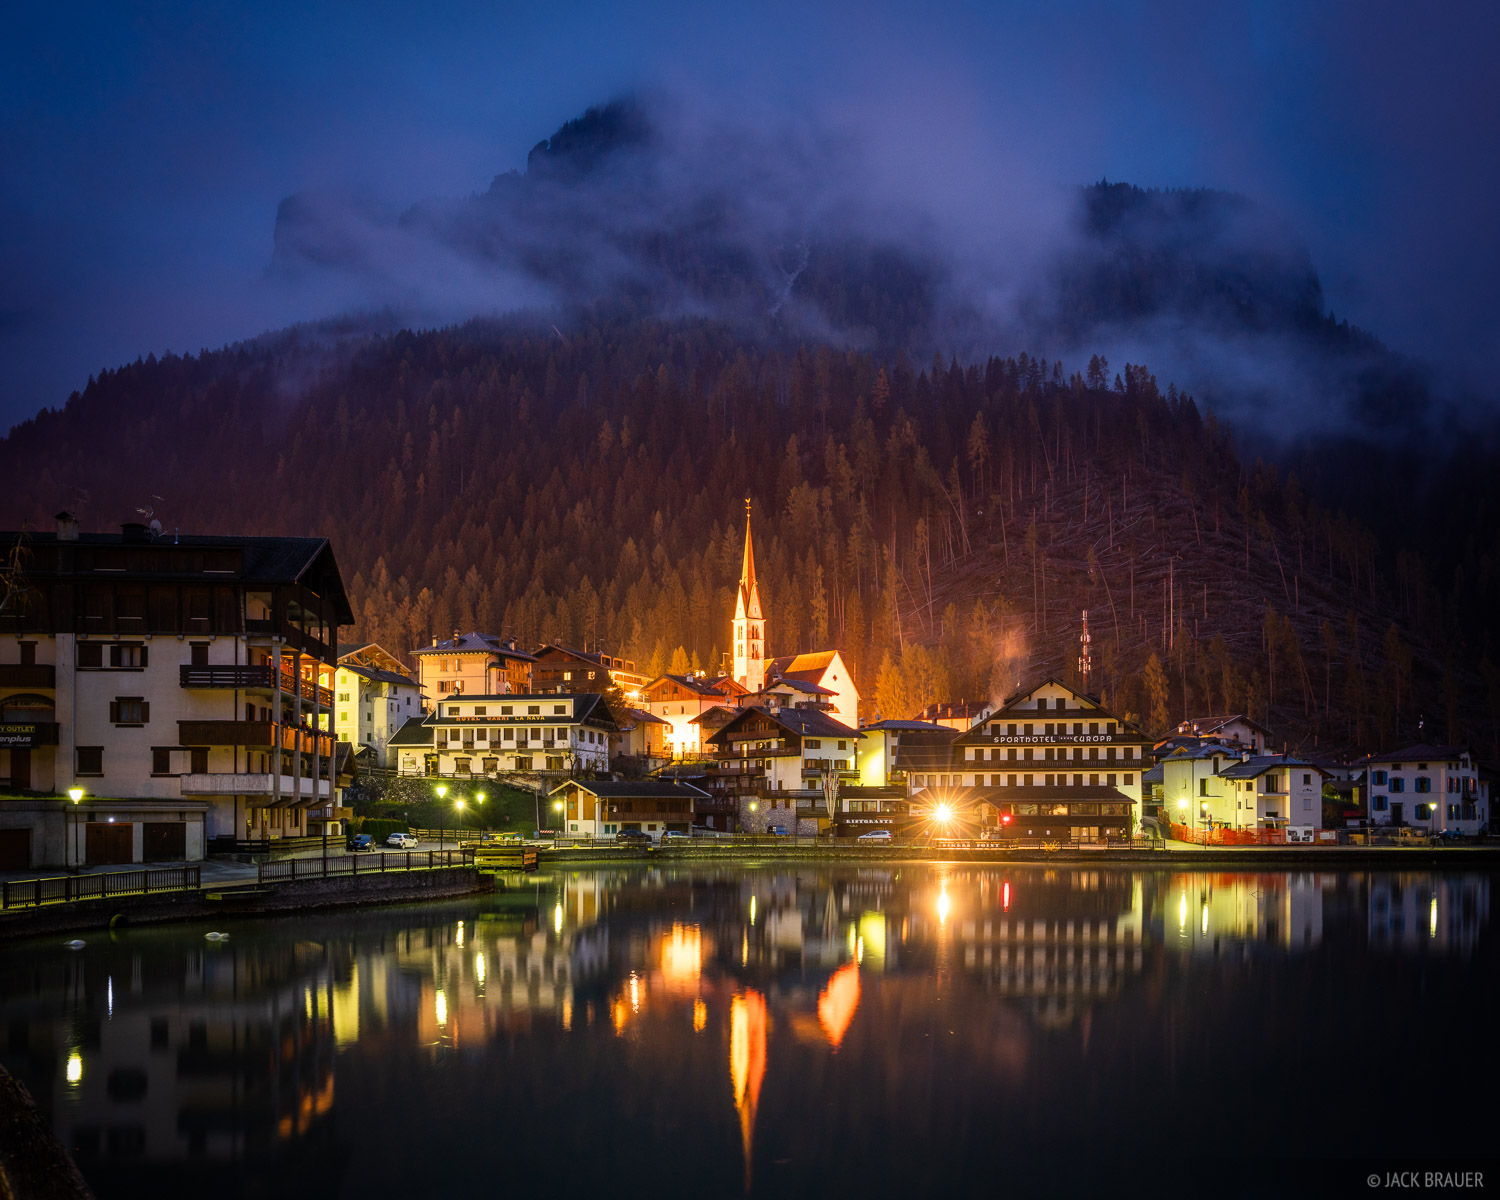 Alleghe, Dolomites, Italy, November, reflection, Alps, photo